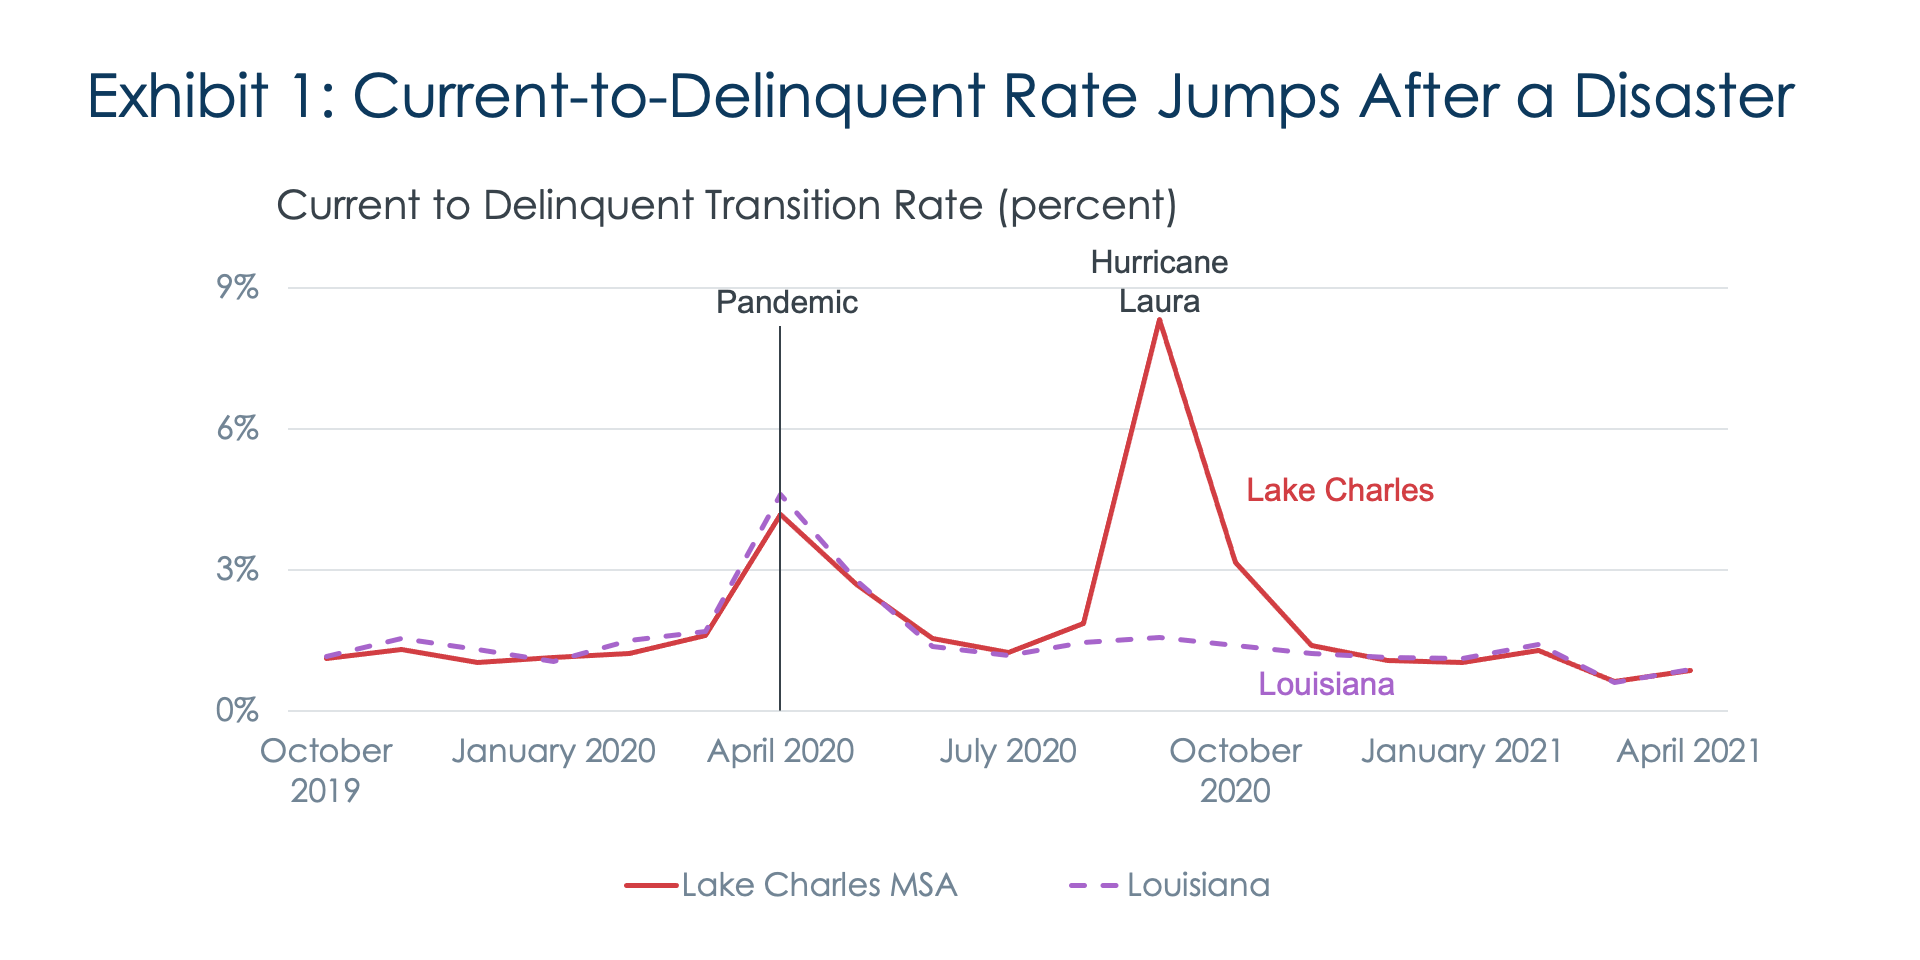 Exhibit 1: Current-to-Delinquent Rate Jumps After a Disaster